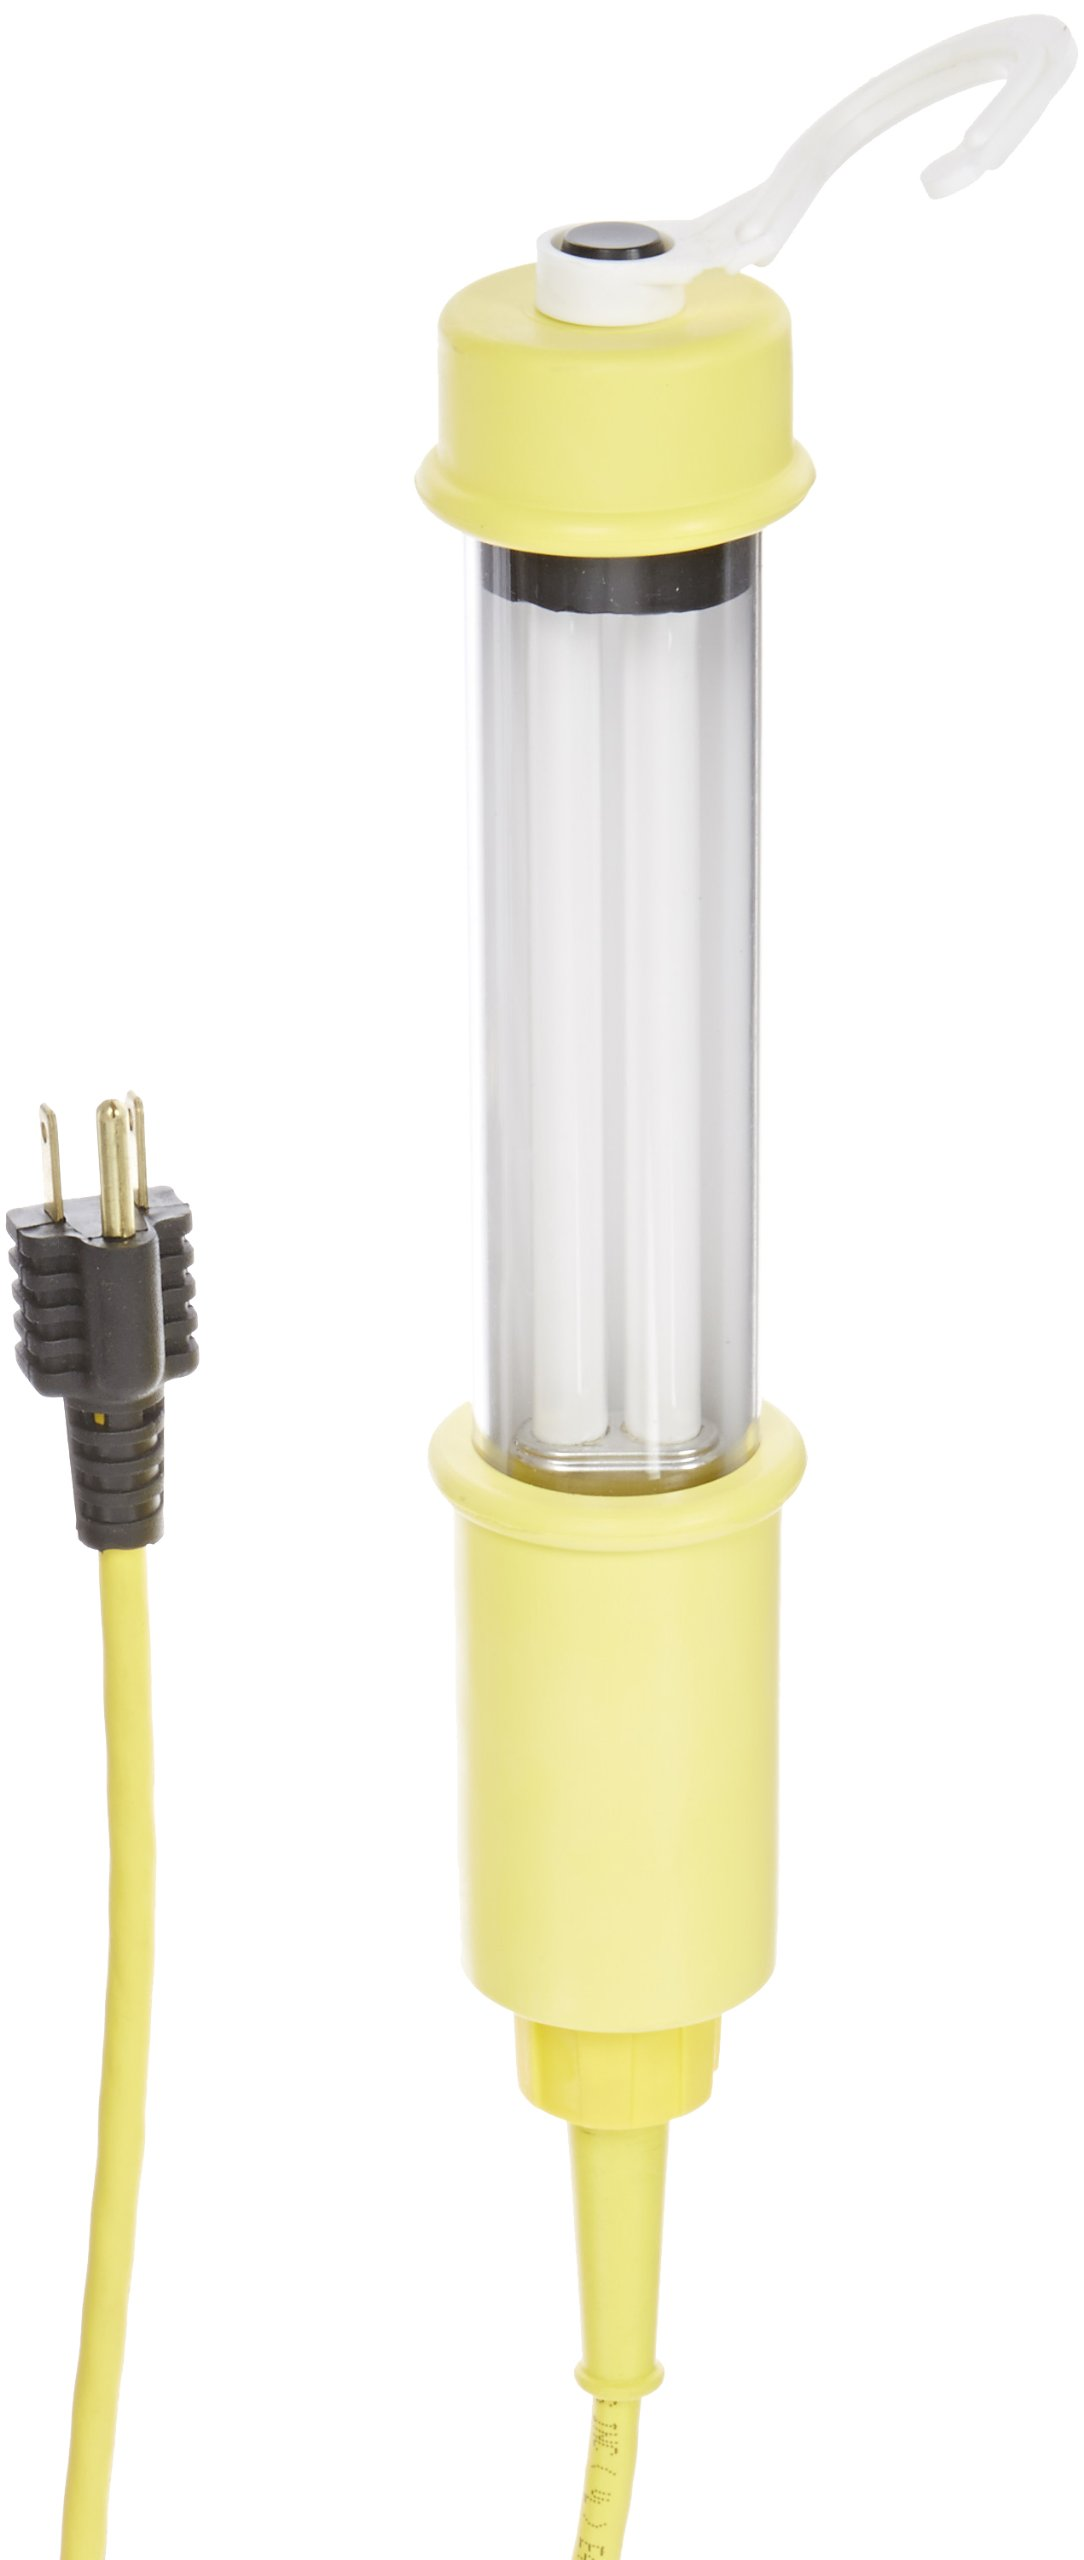 KH Industries 1325-650 Fluorescent Hand Lamp, 13 Watt, 120V, 60 Hz, 25' Cable